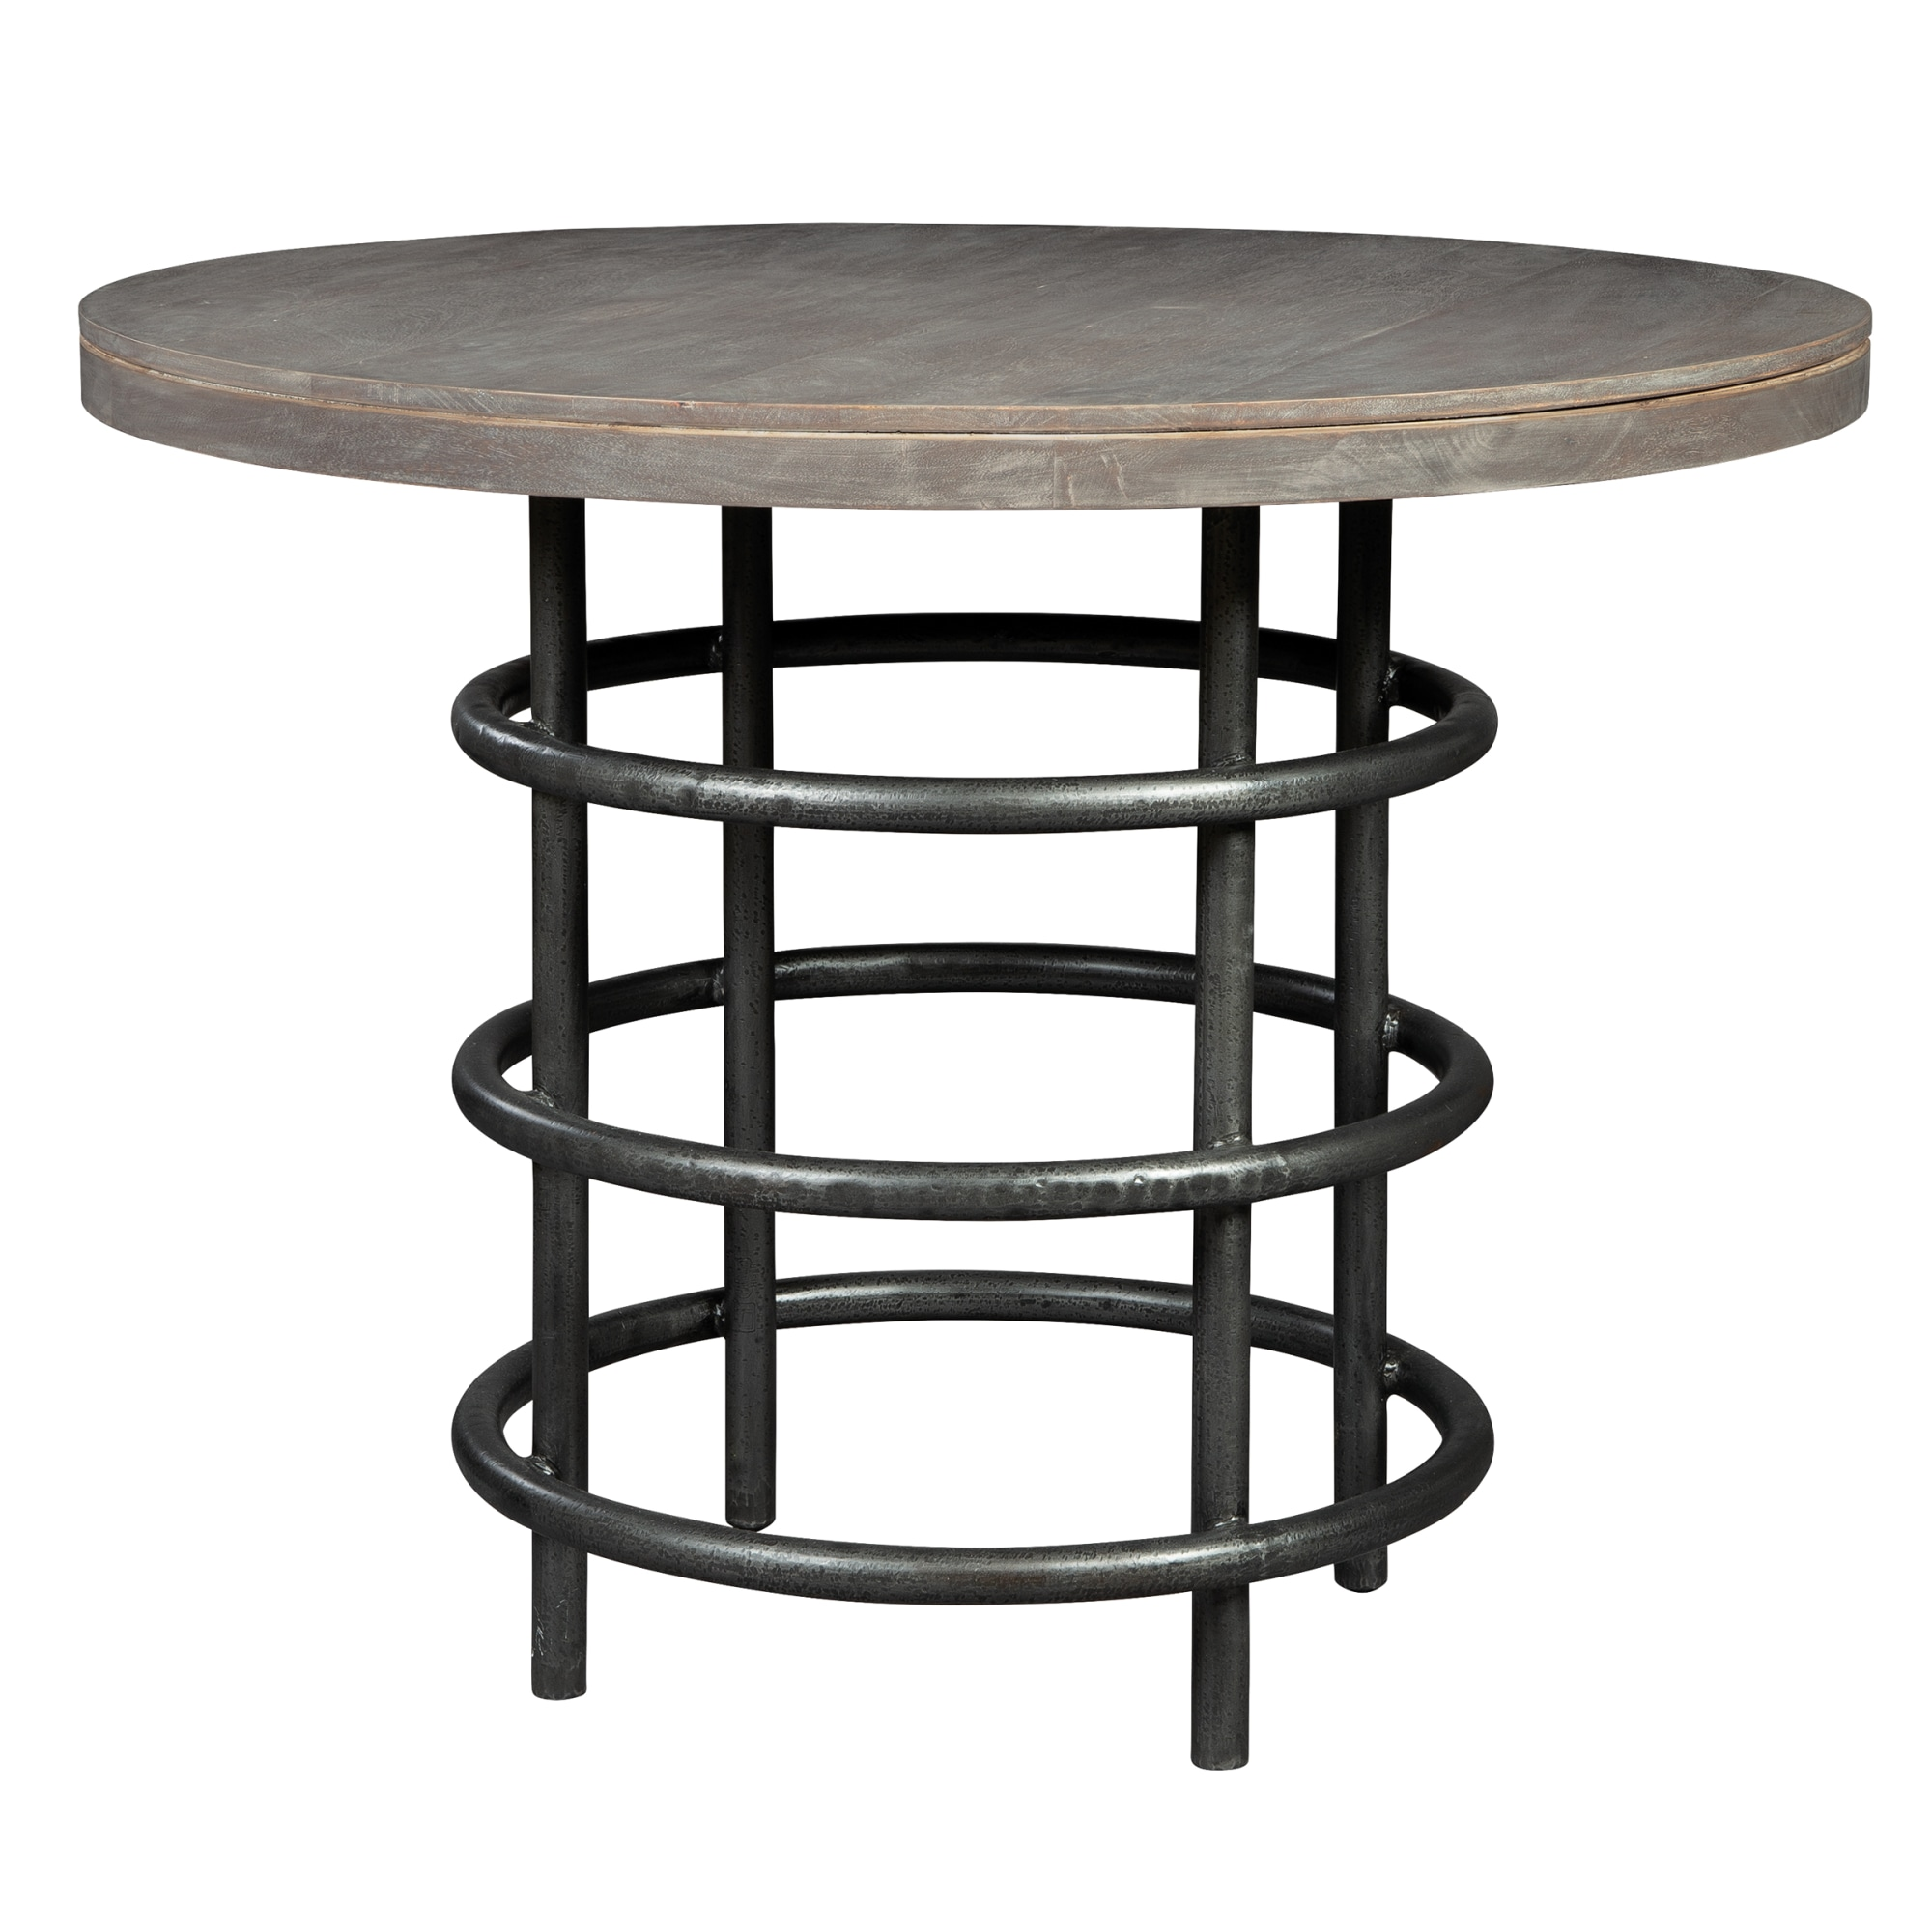 Image for 2-4528 Sedona Pub Table from Hekman Official Website